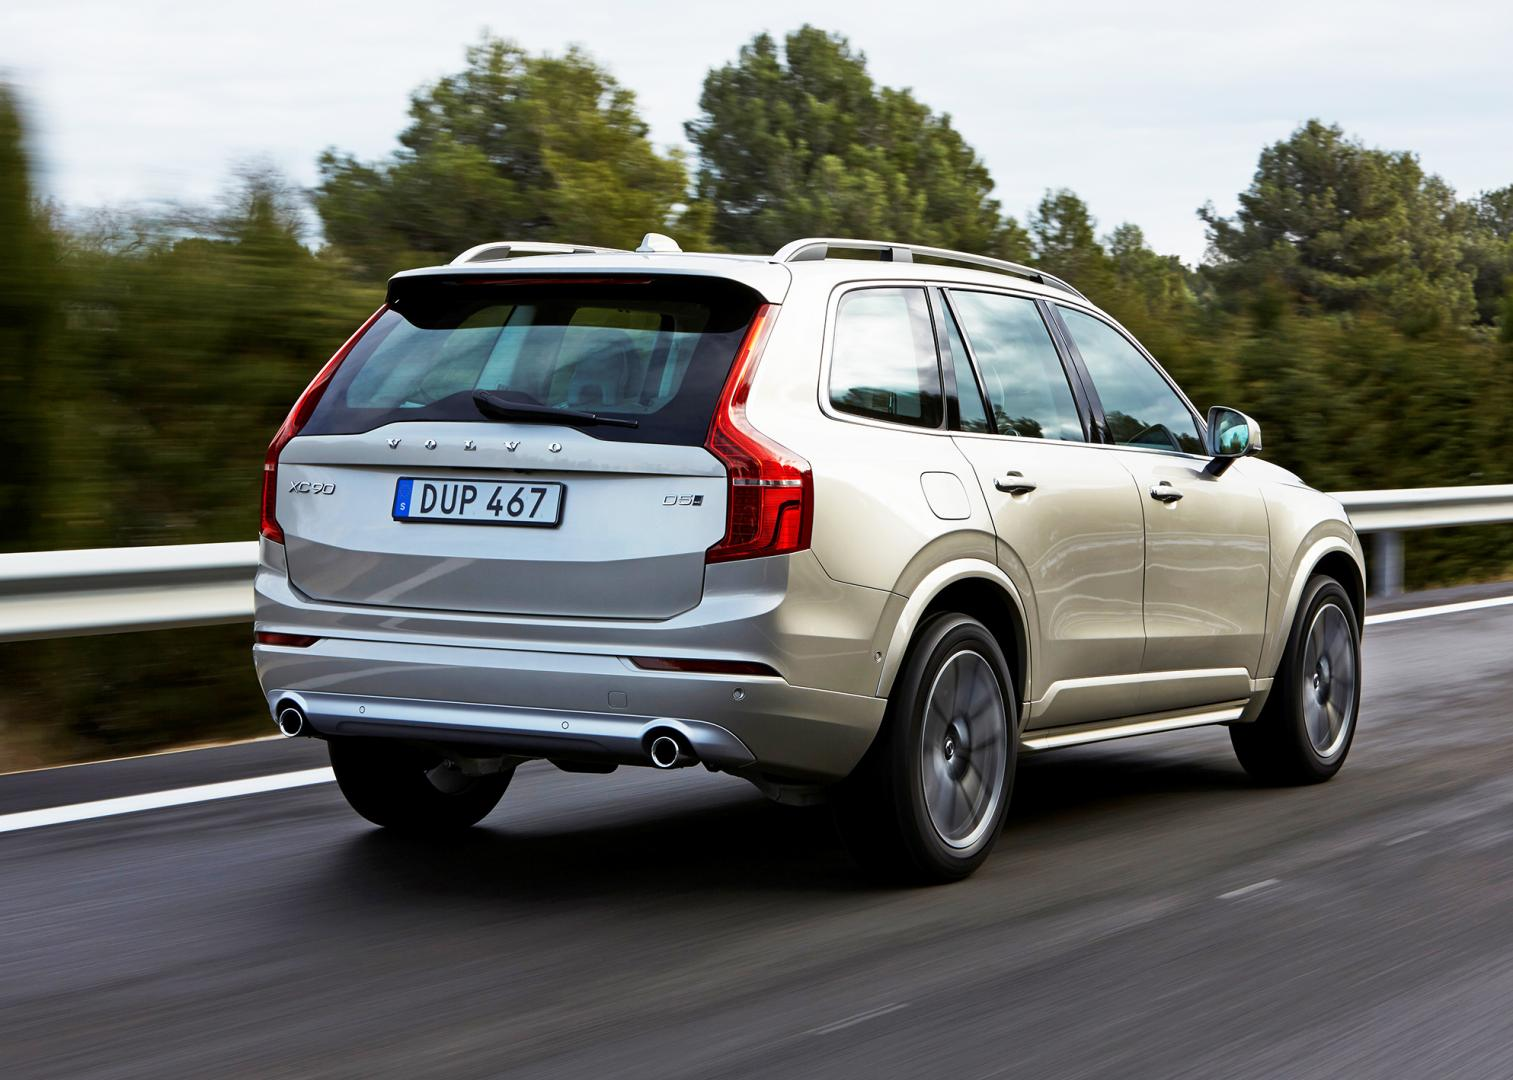 volvo xc90 d5 awd topgear. Black Bedroom Furniture Sets. Home Design Ideas